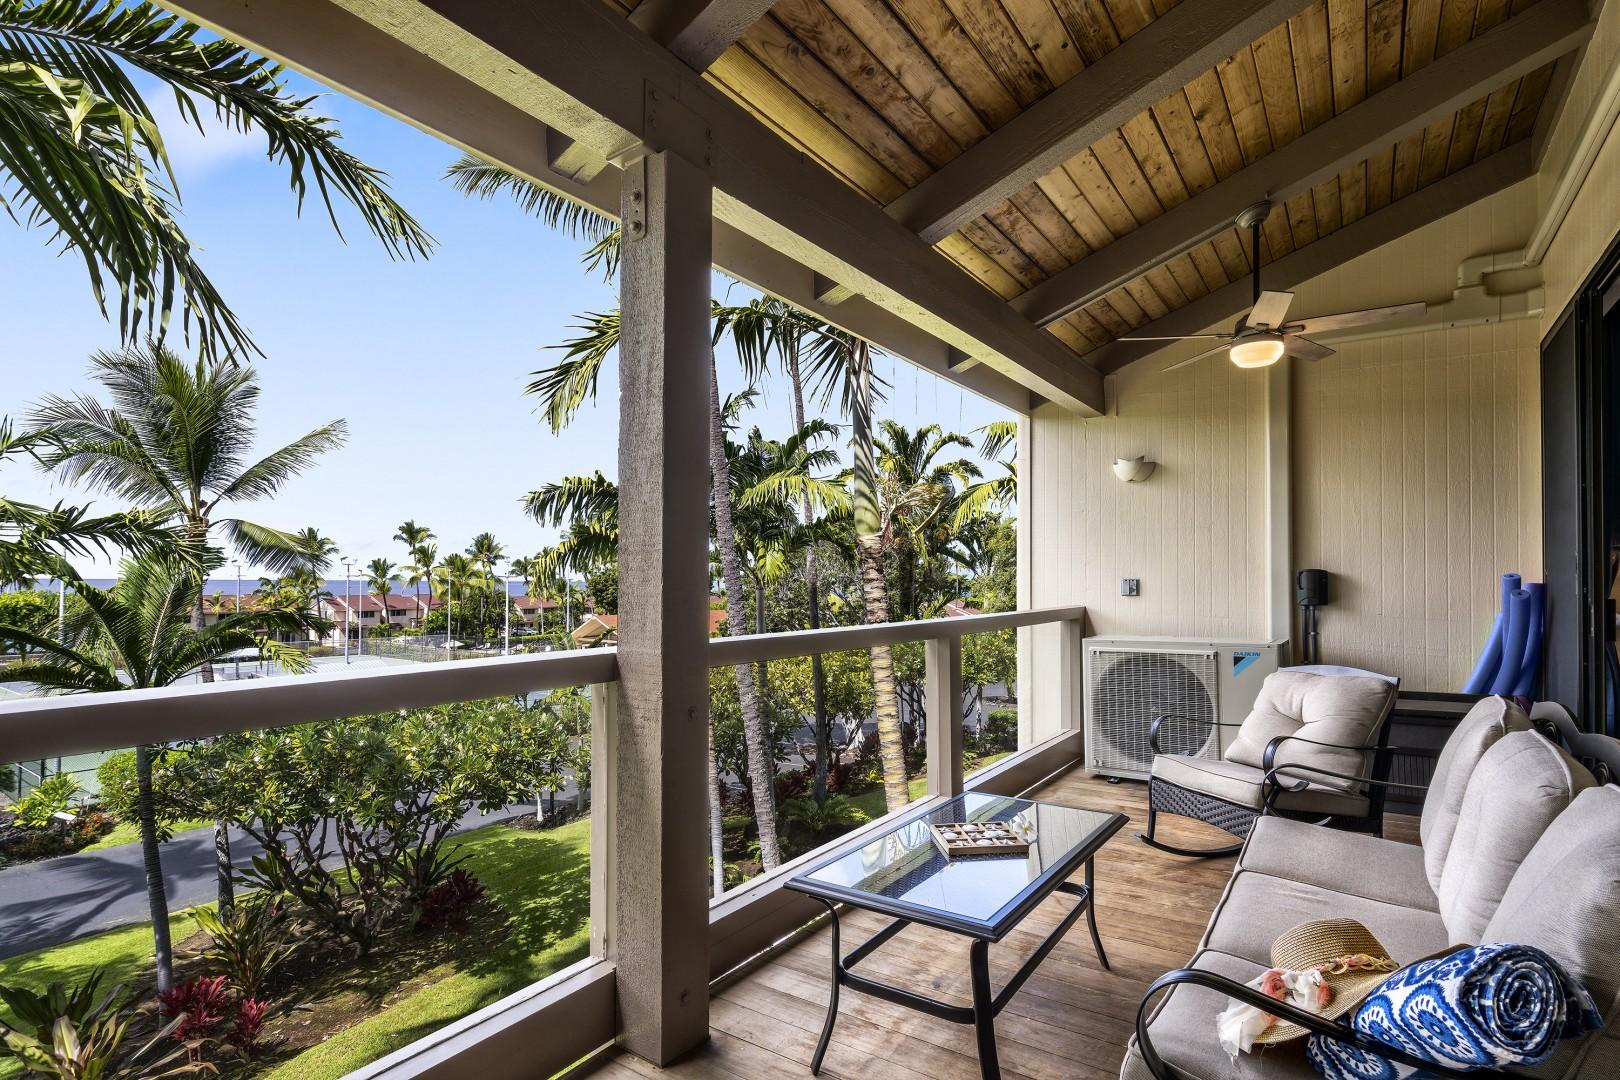 There are a number of seating options on the spacious Lanai